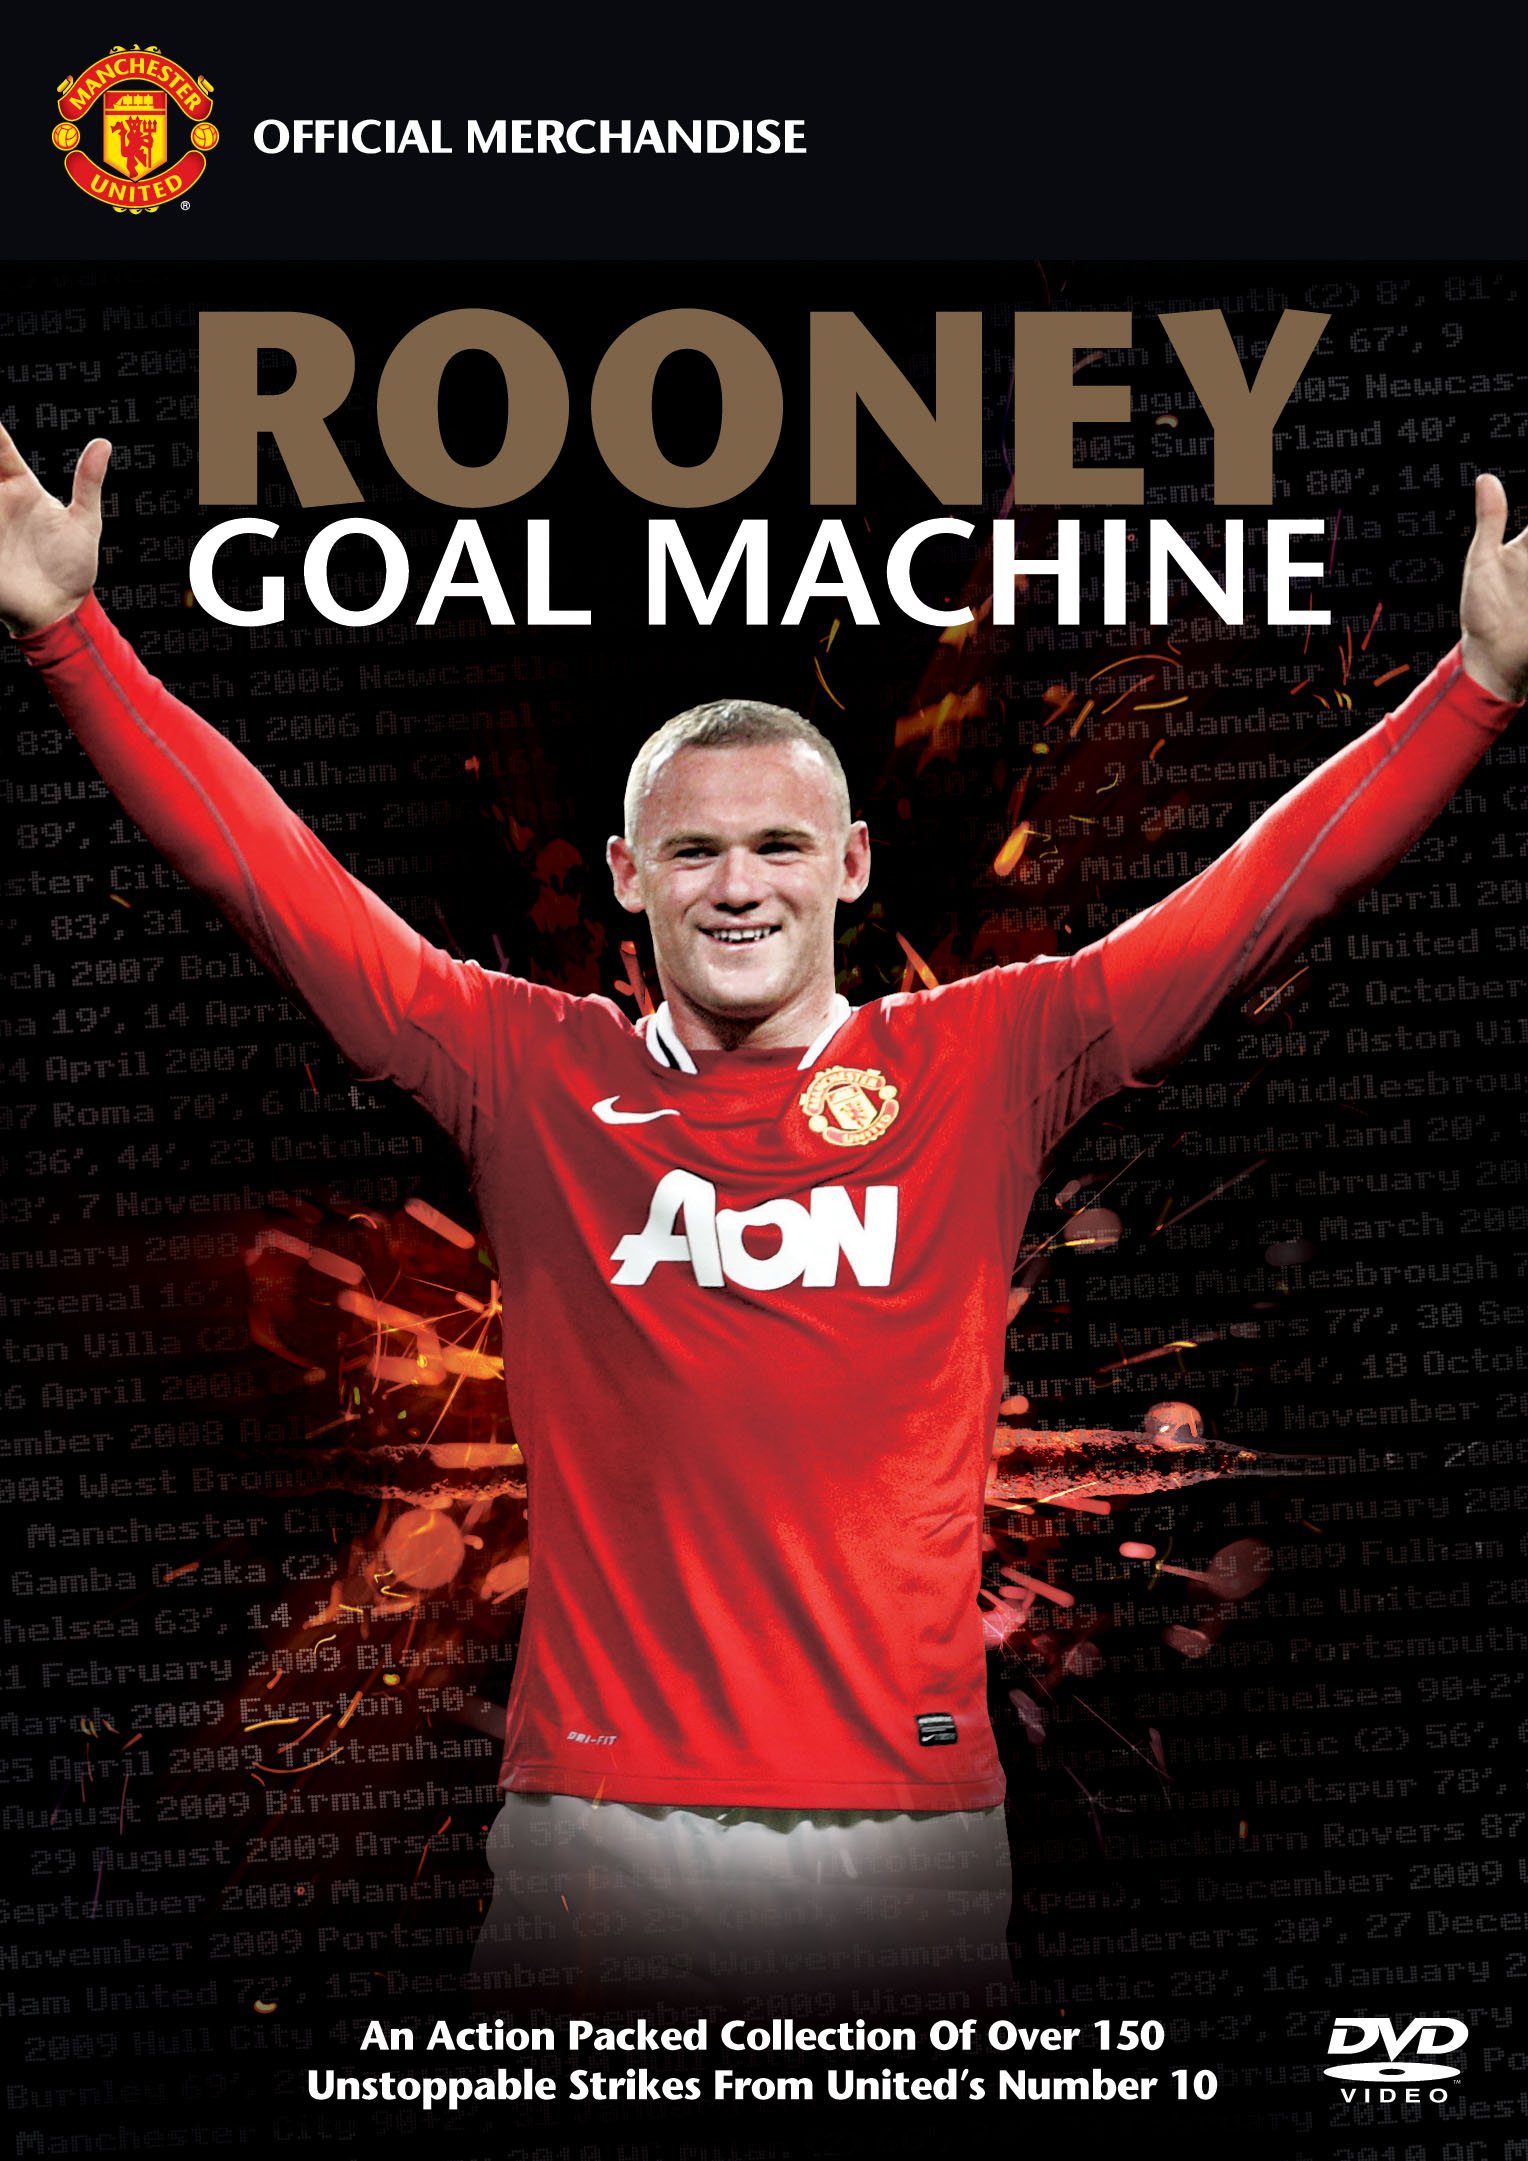 COMPETITION: Rooney Goal Machine